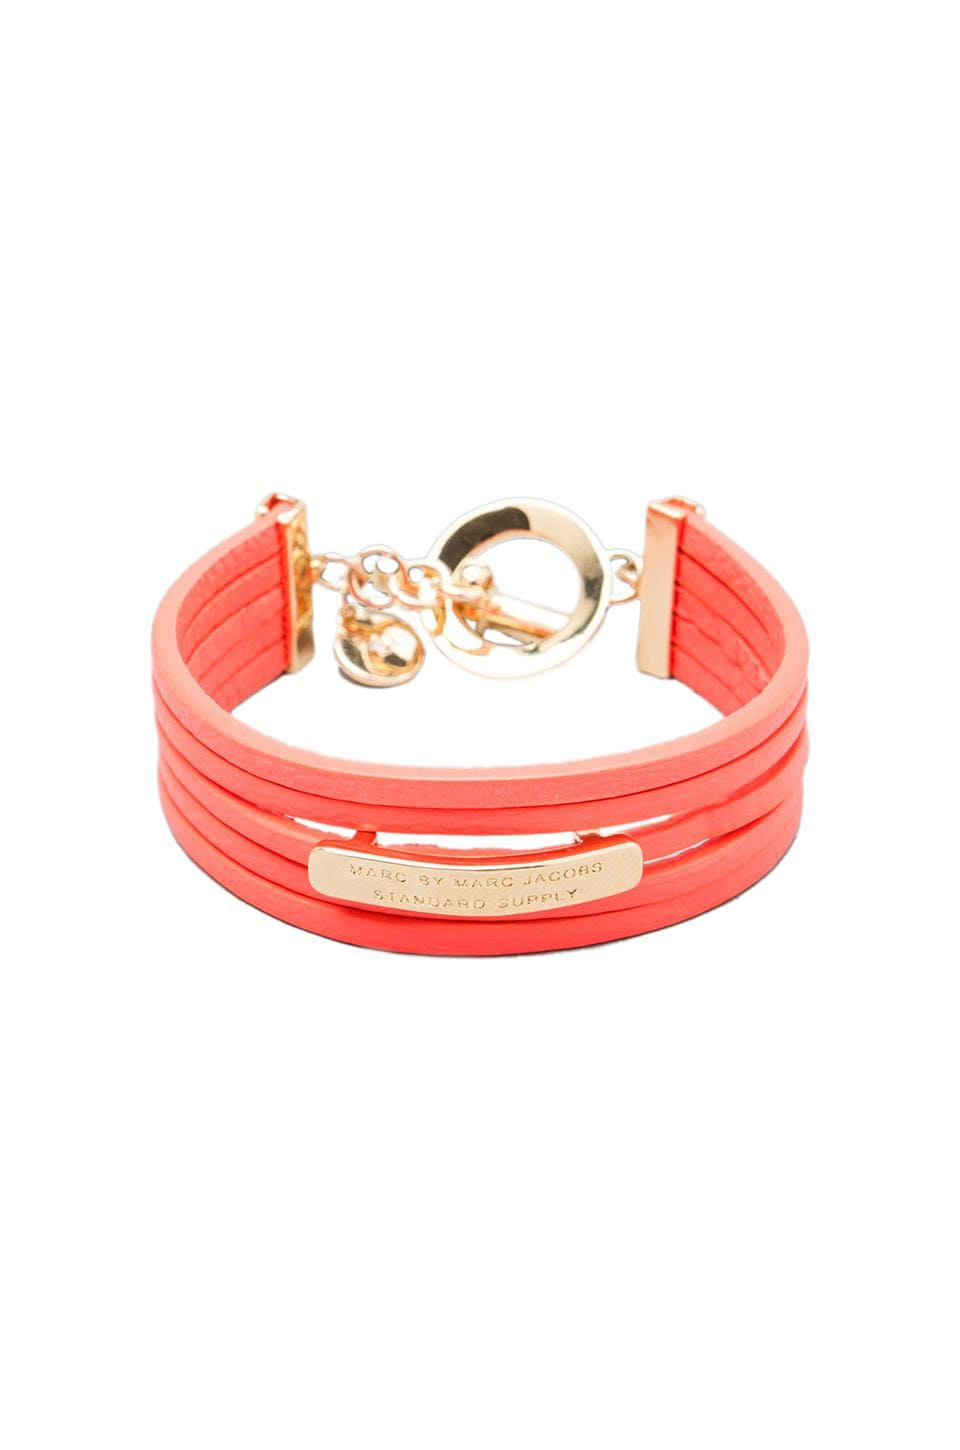 Marc by Marc Jacobs Multi Leather Toggle Bracelet in Highlighter Orange